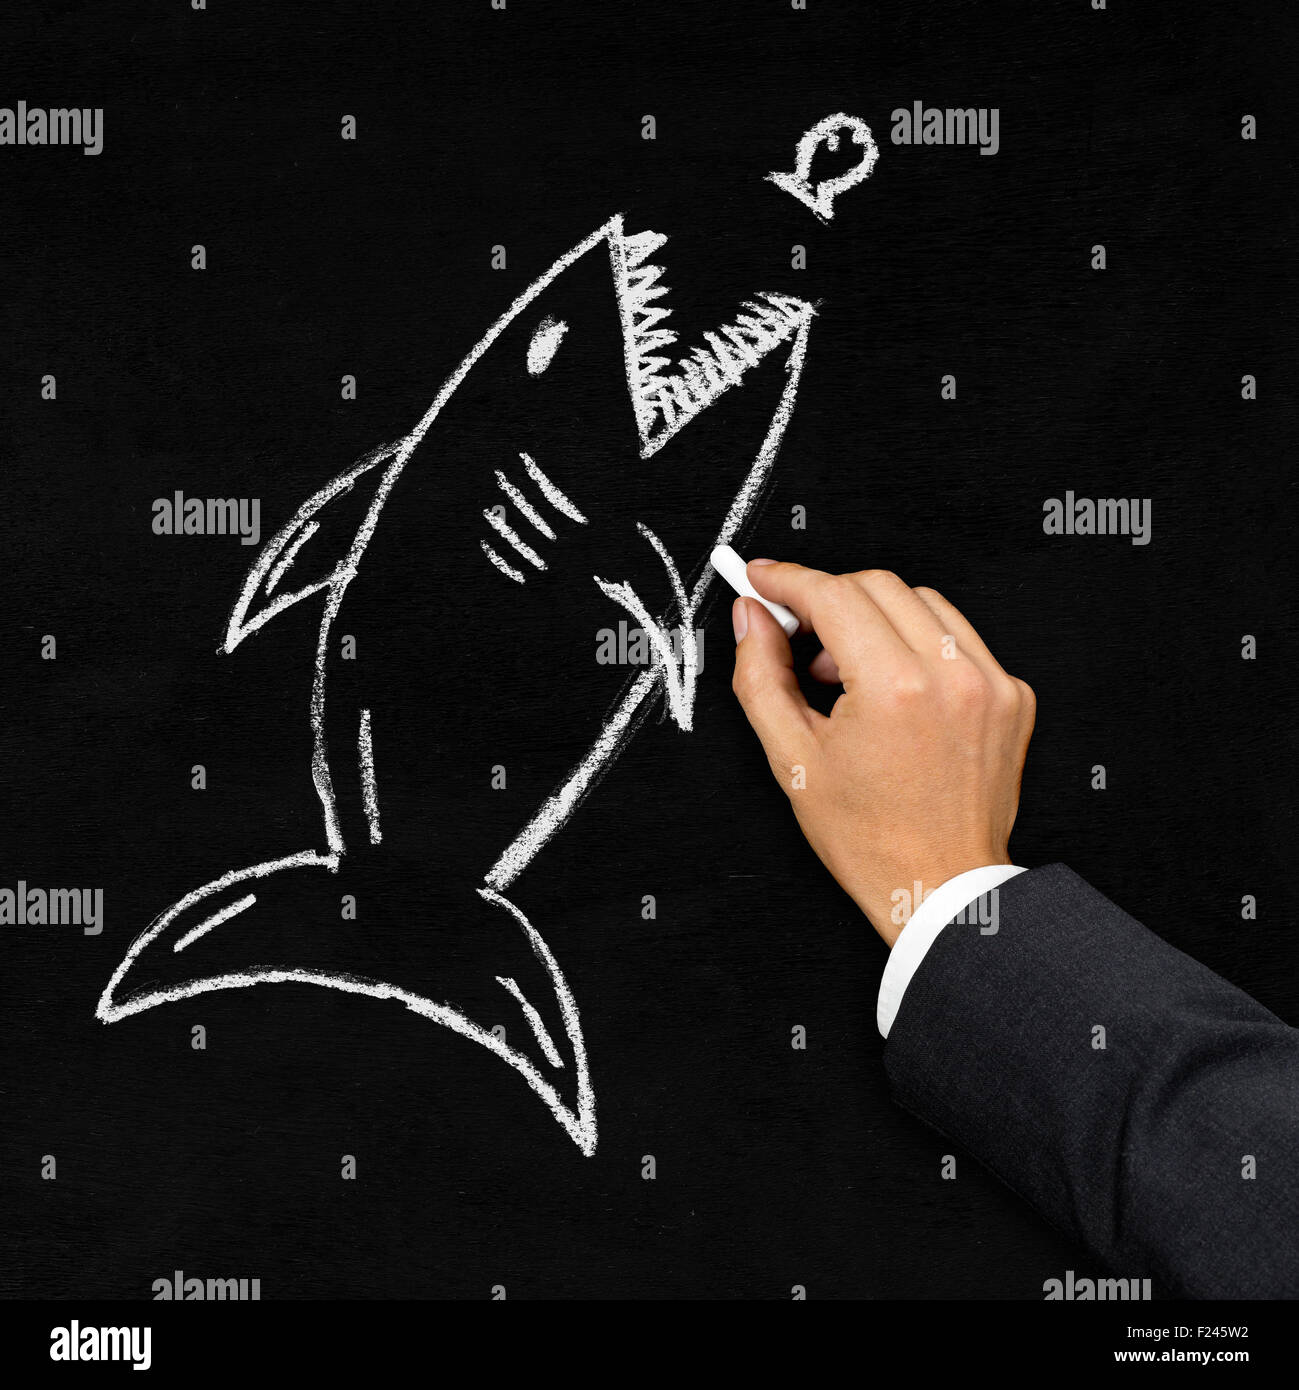 Businessman drawing shark hunting little fish with chalk on blackboard - acquisition, challenge or danger concept - Stock Image